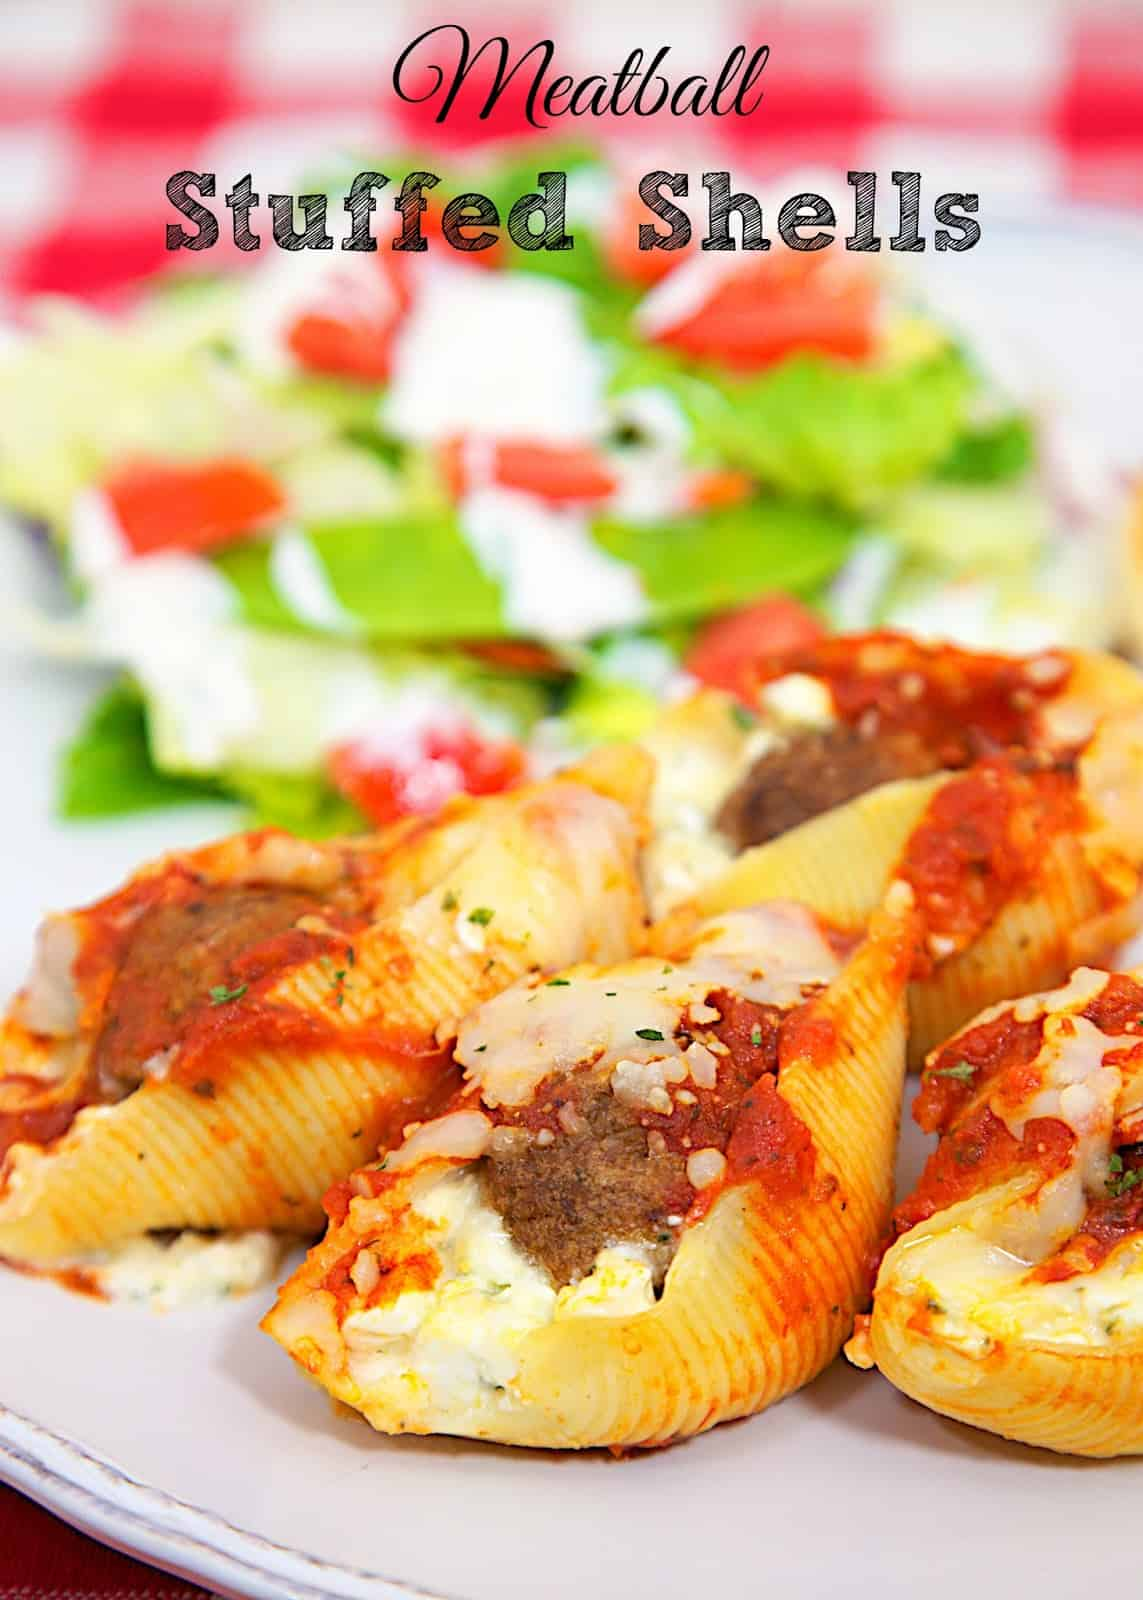 Meatball Stuffed Shells - easy weeknight pasta casserole! Fill pasta shells with frozen meatballs and top with sauce and cheese. Ready to eat in under 30 minutes!! Everyone LOVED this easy pasta casserole recipe! Can freeze for later too!